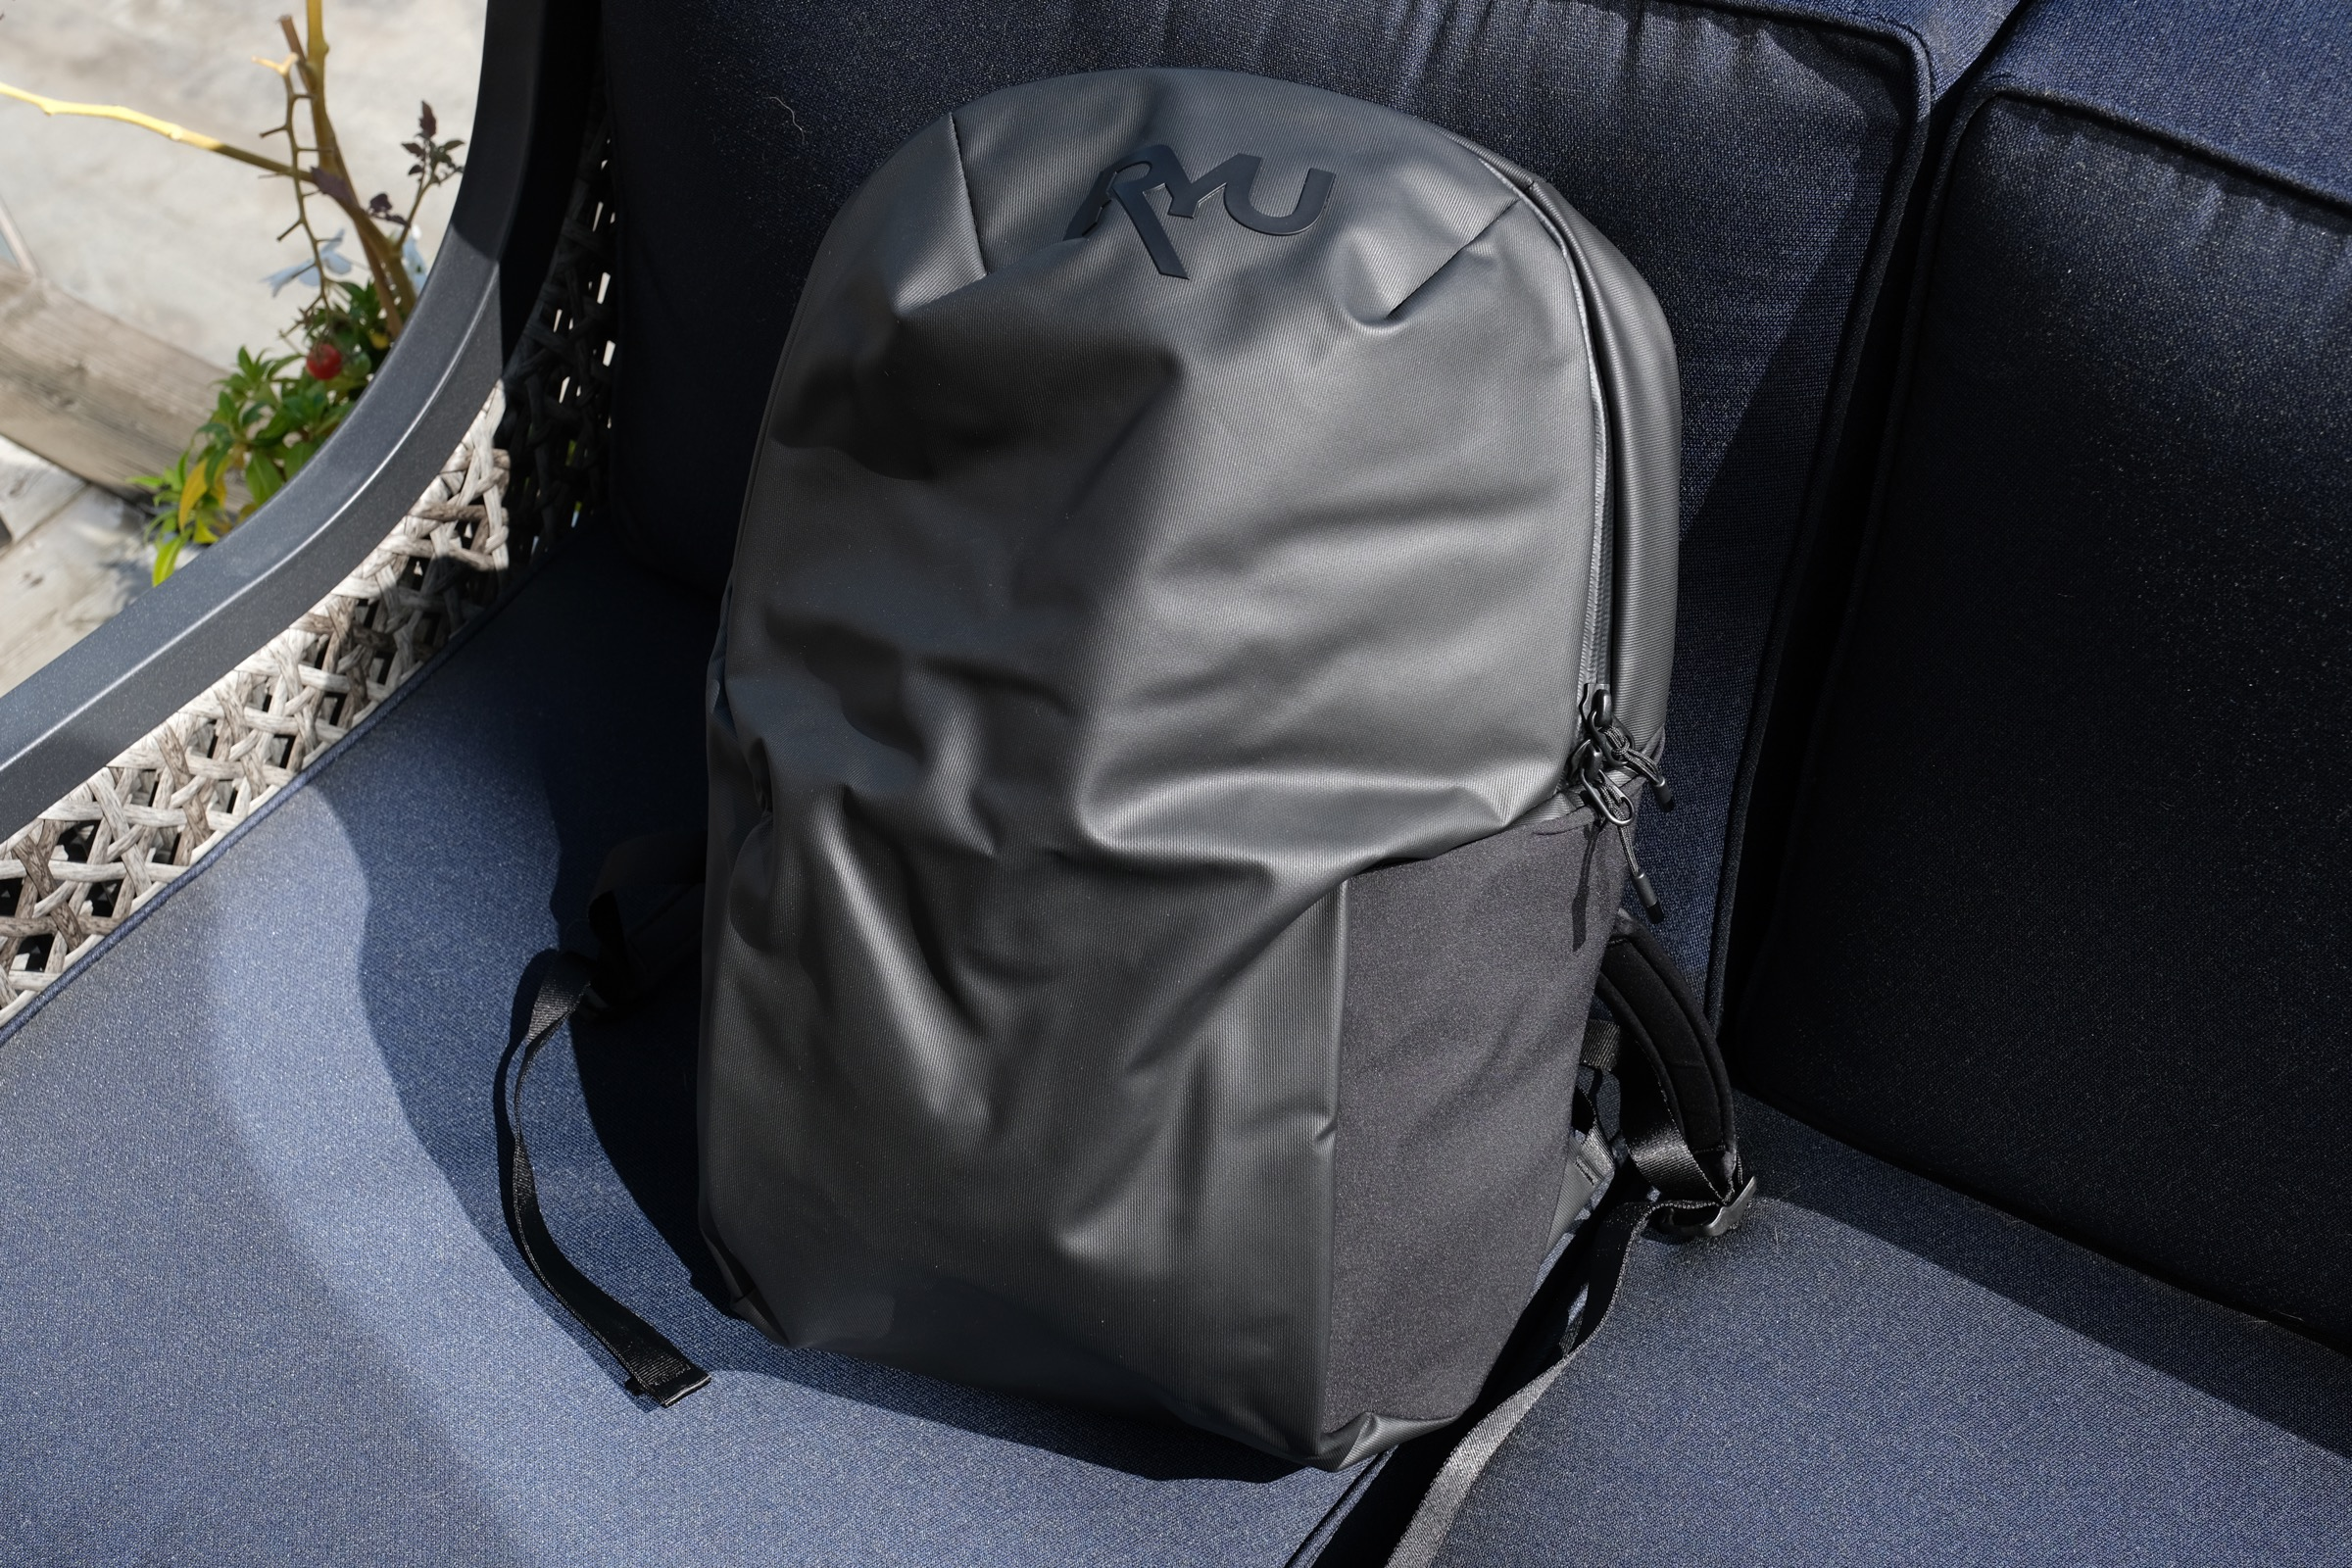 RYU bags 4 Express Pack 15L